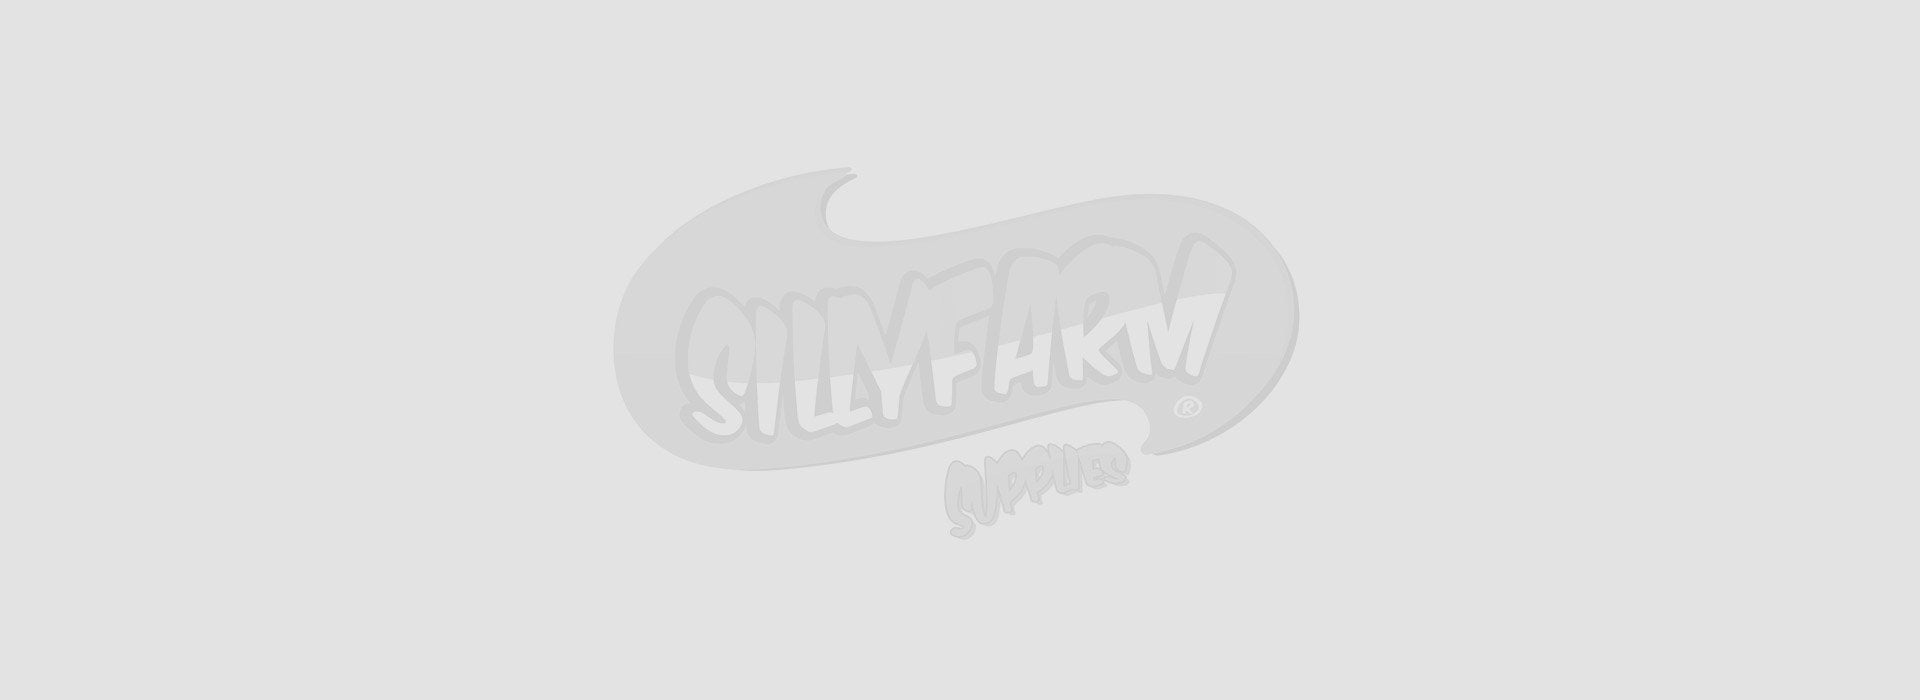 Brand X | Silly Farm Supplies